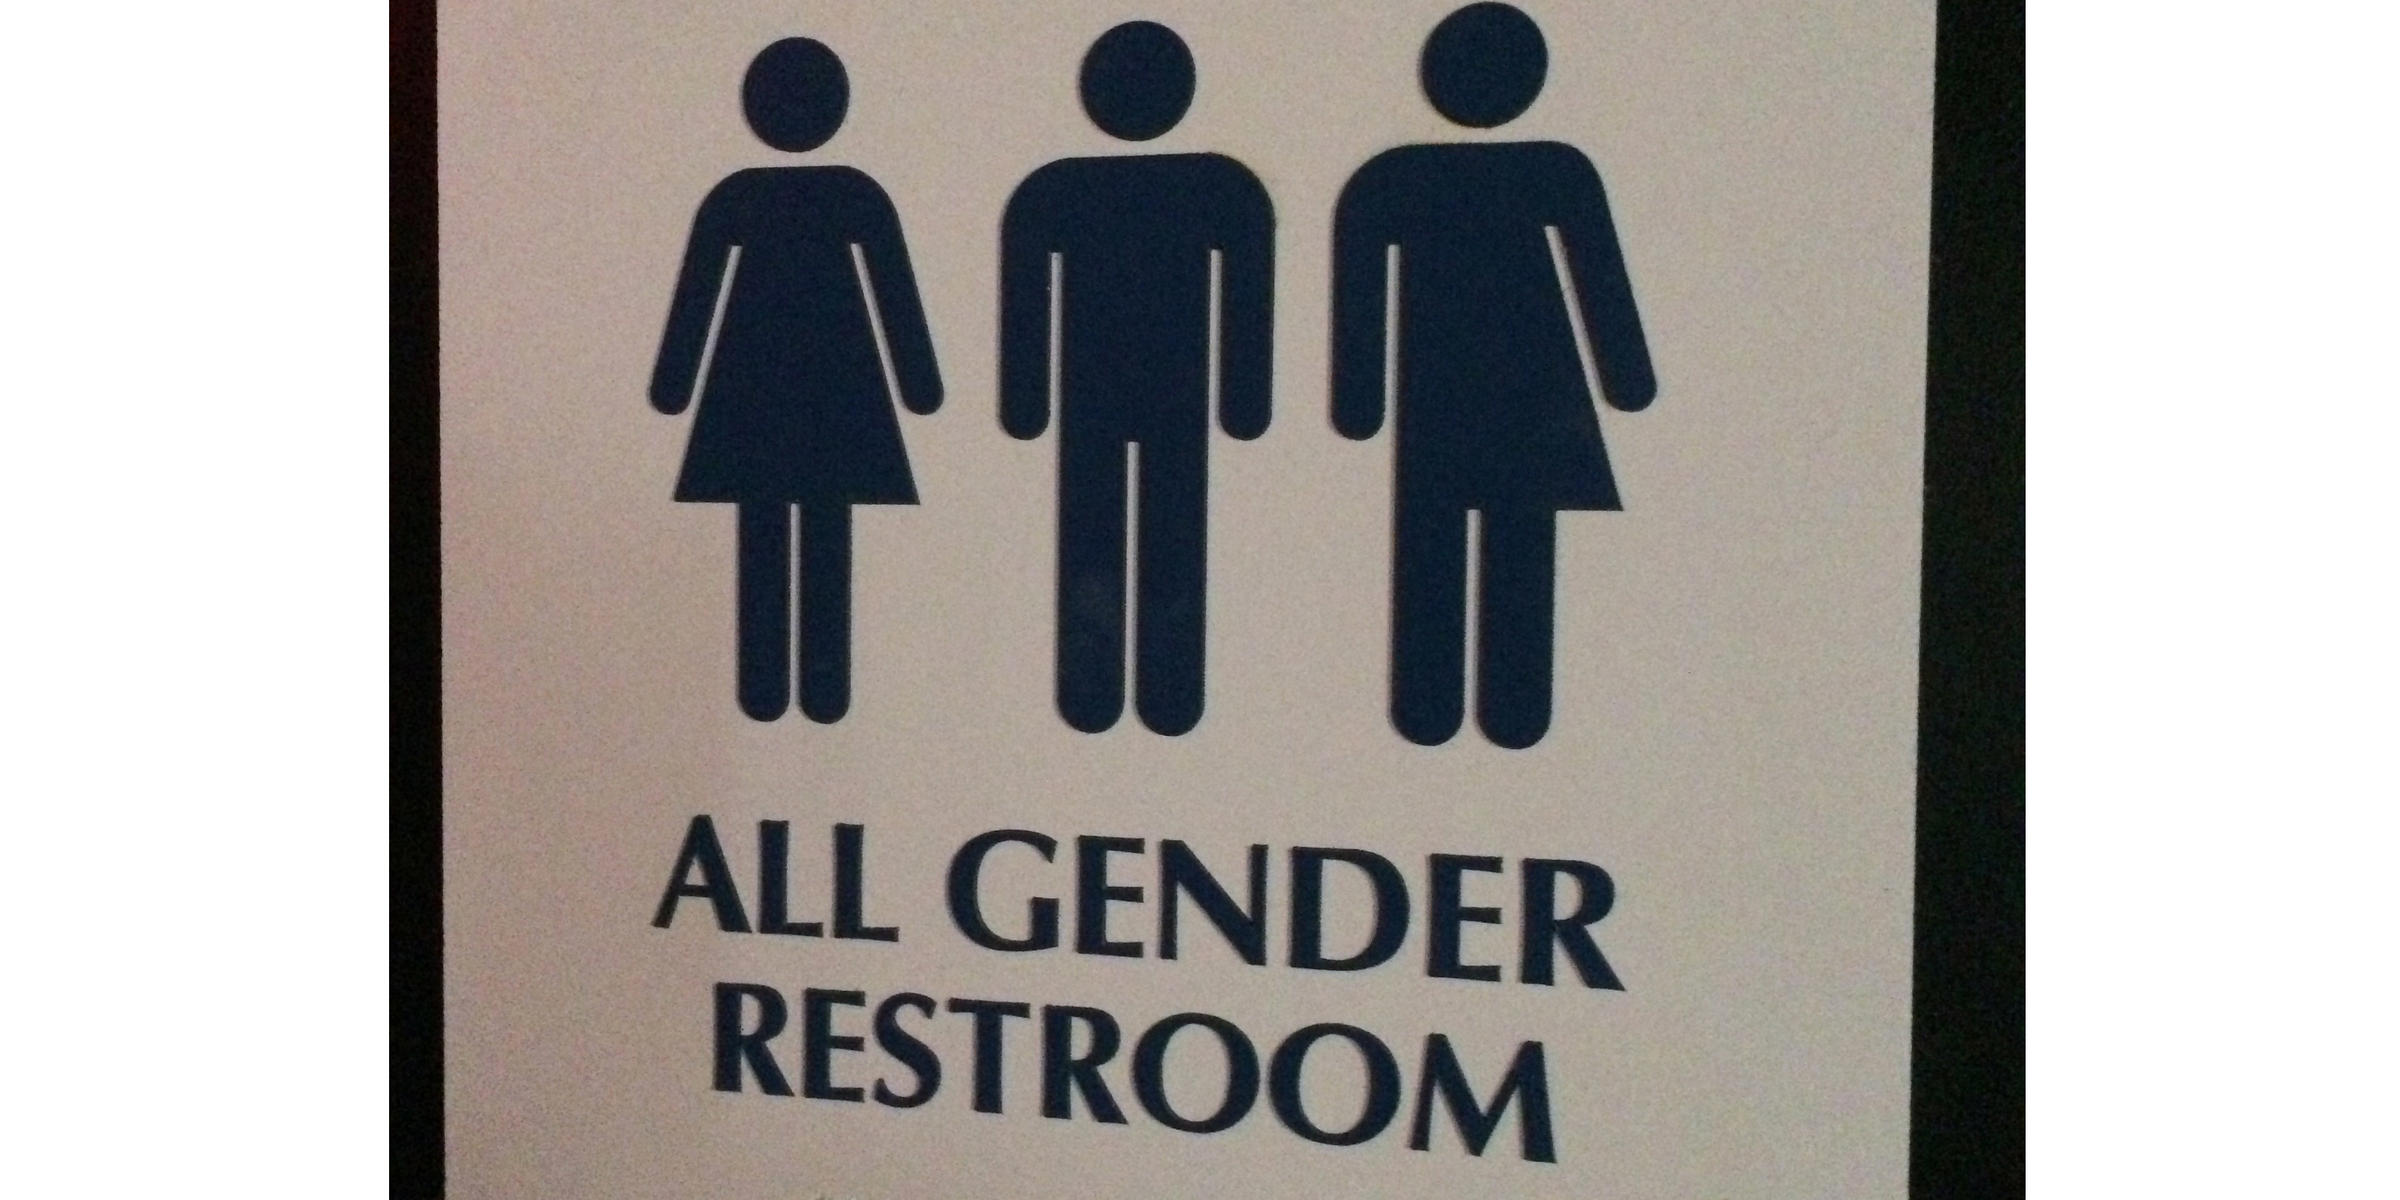 letter from obama enflames georgia fight over restrooms | wabe 90.1 fm